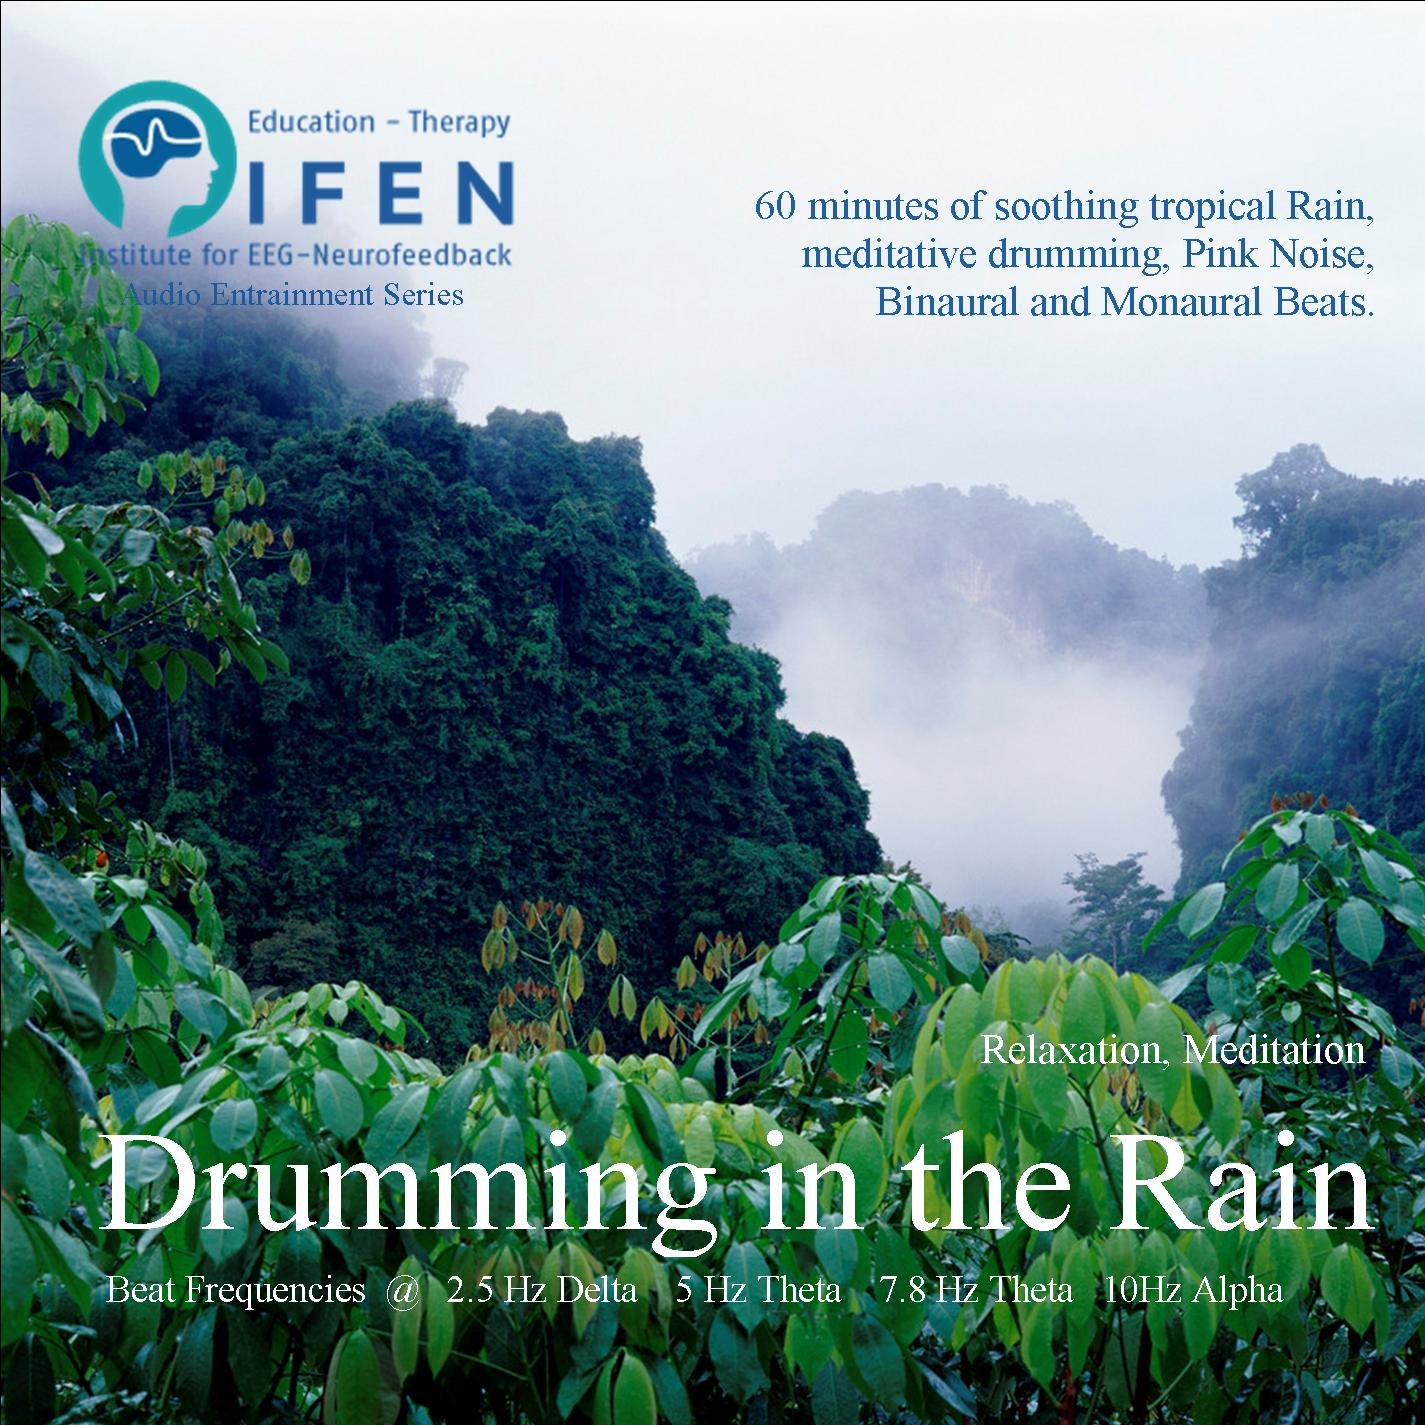 Drumming in the Rain - Binaural Beat MP3 - Relaxation, Meditaition